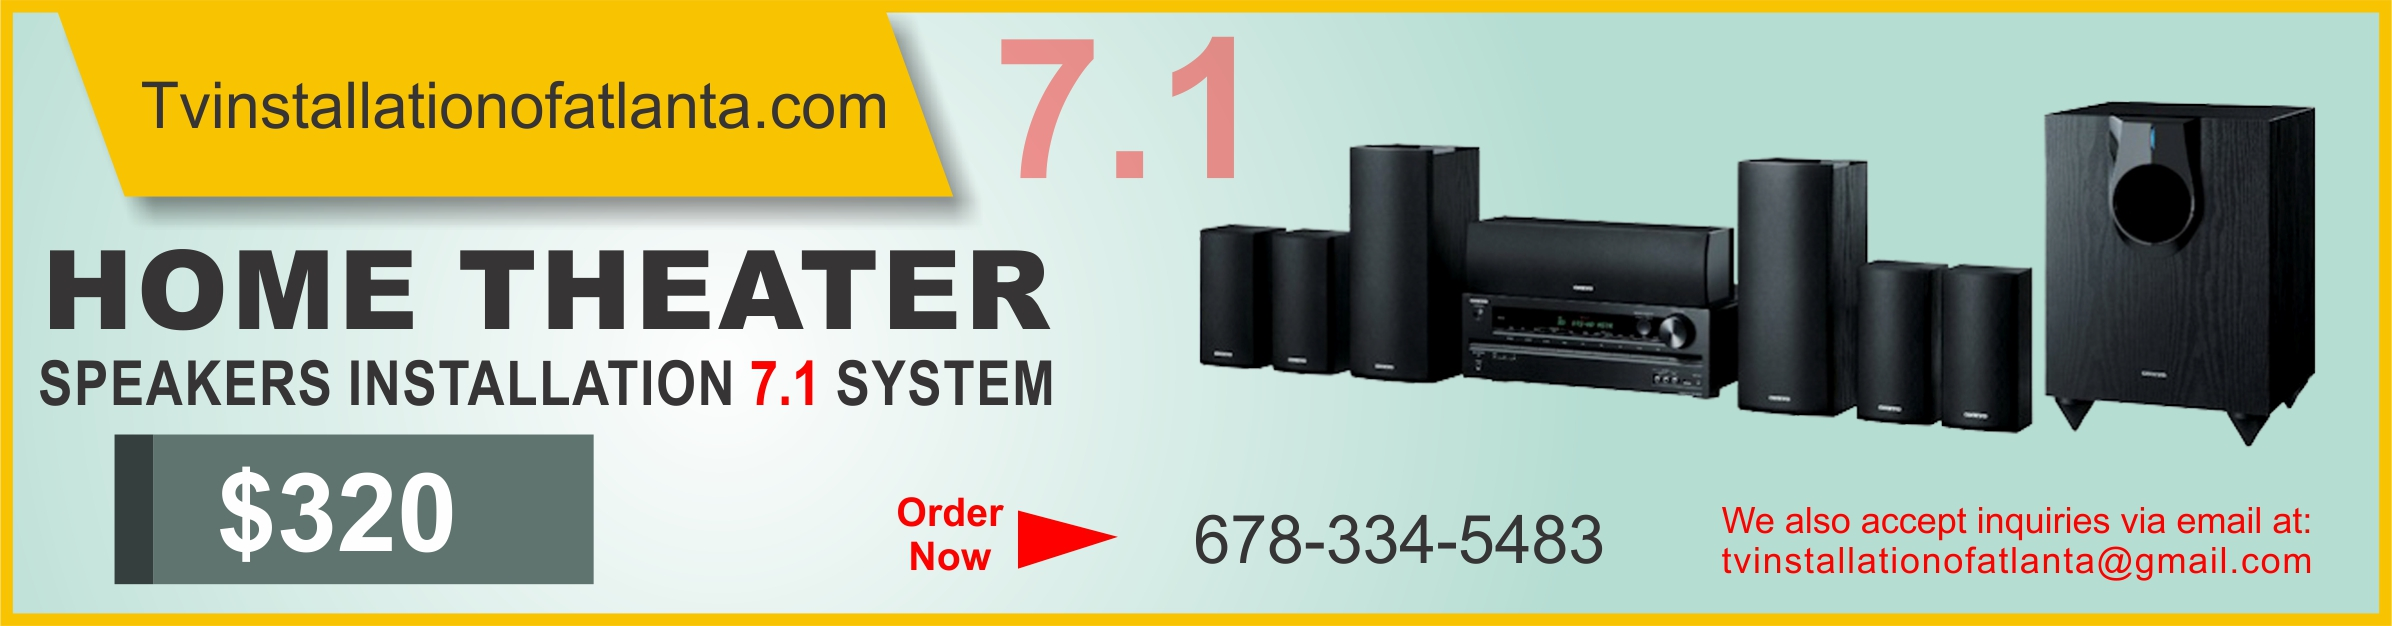 Home Theater Speakers Installation 7.1 System